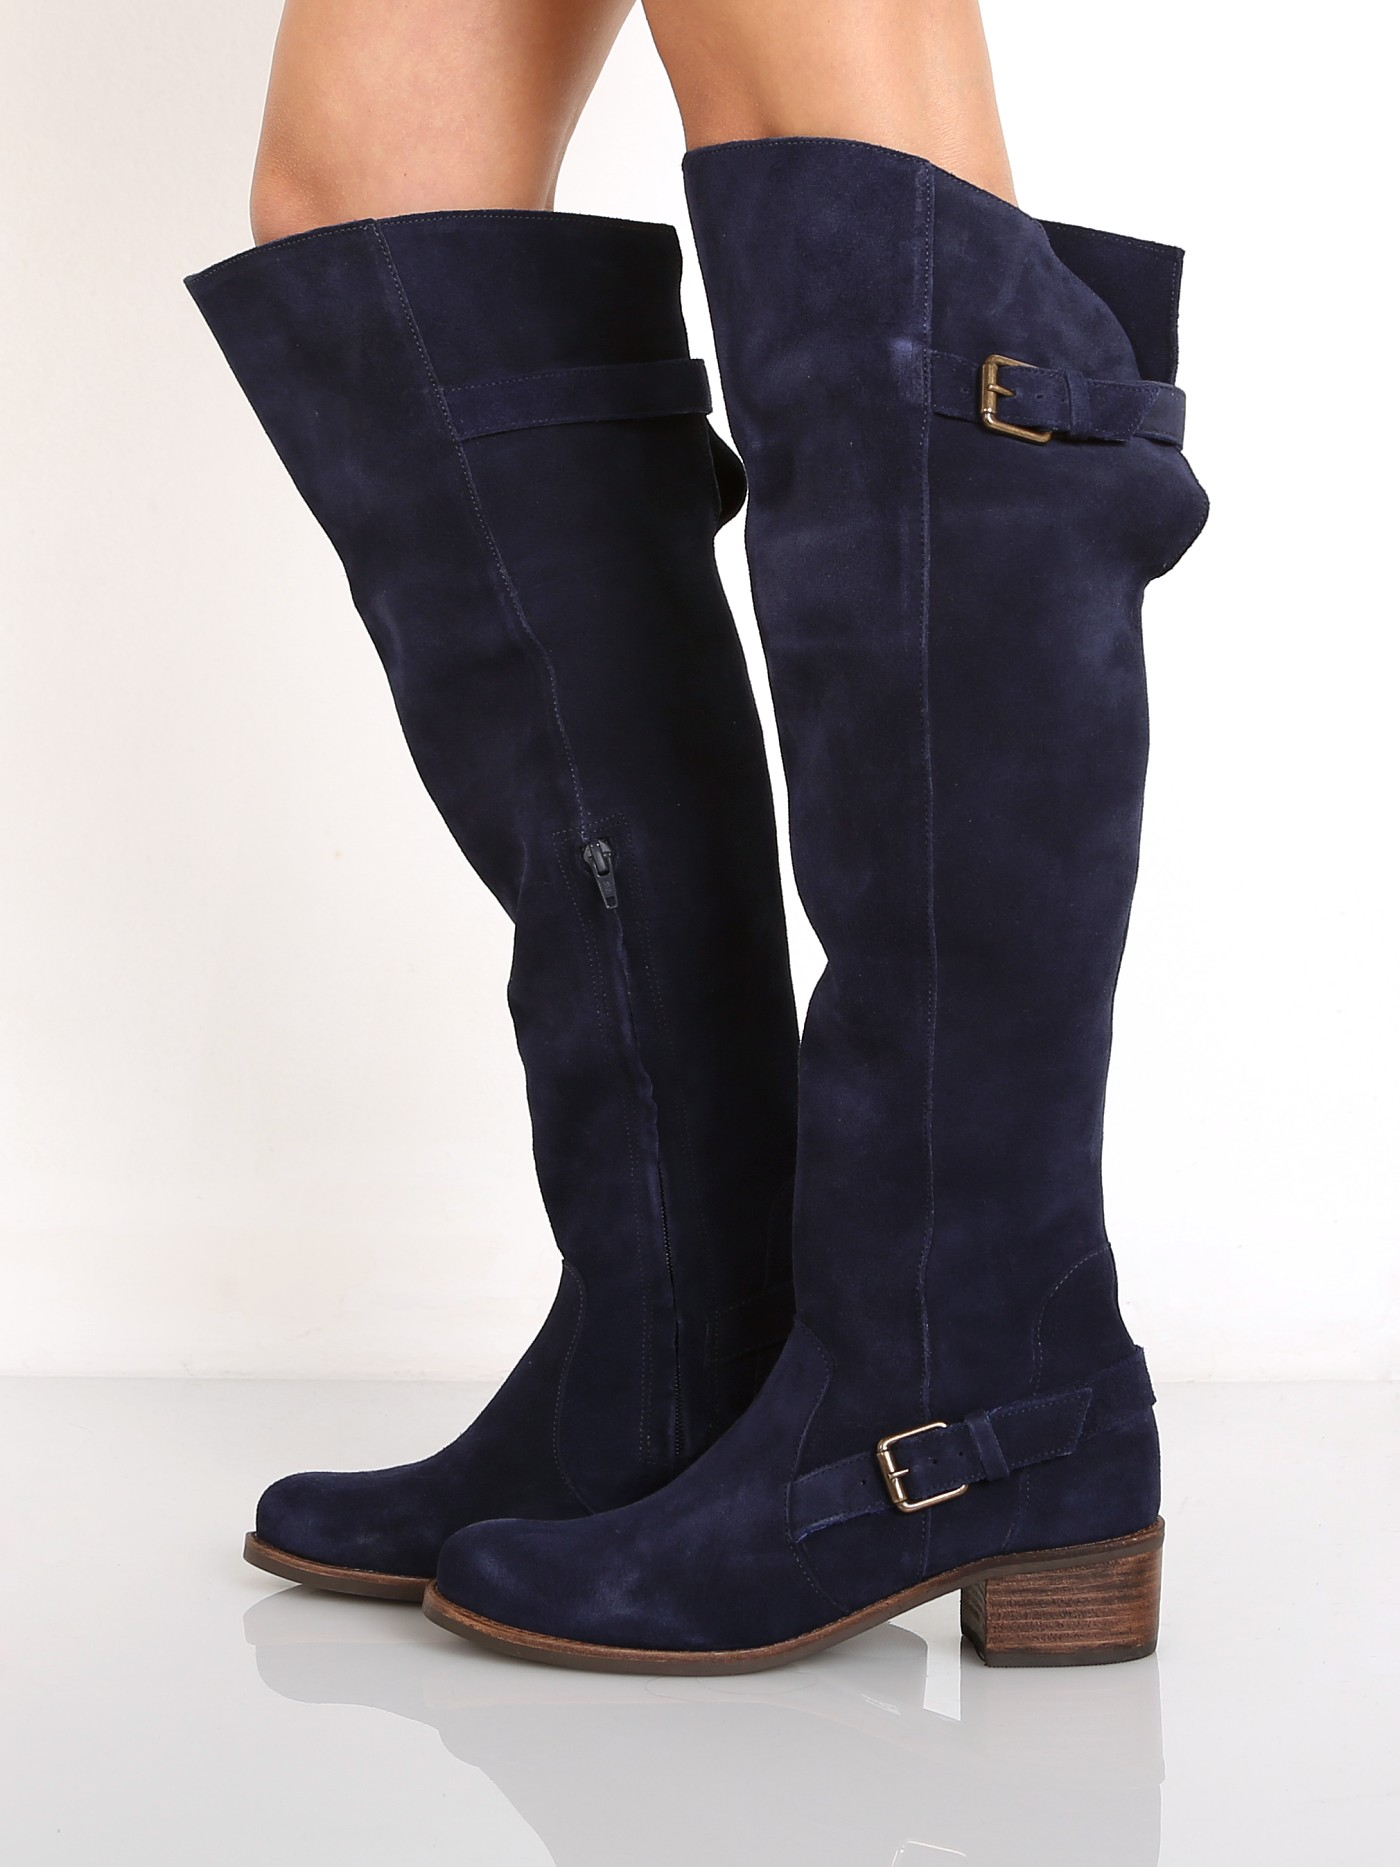 d31d9d525ee Matisse Finnley Over the Knee Boot Blue Suede FINNLEY - Free Shipping at  Largo Drive